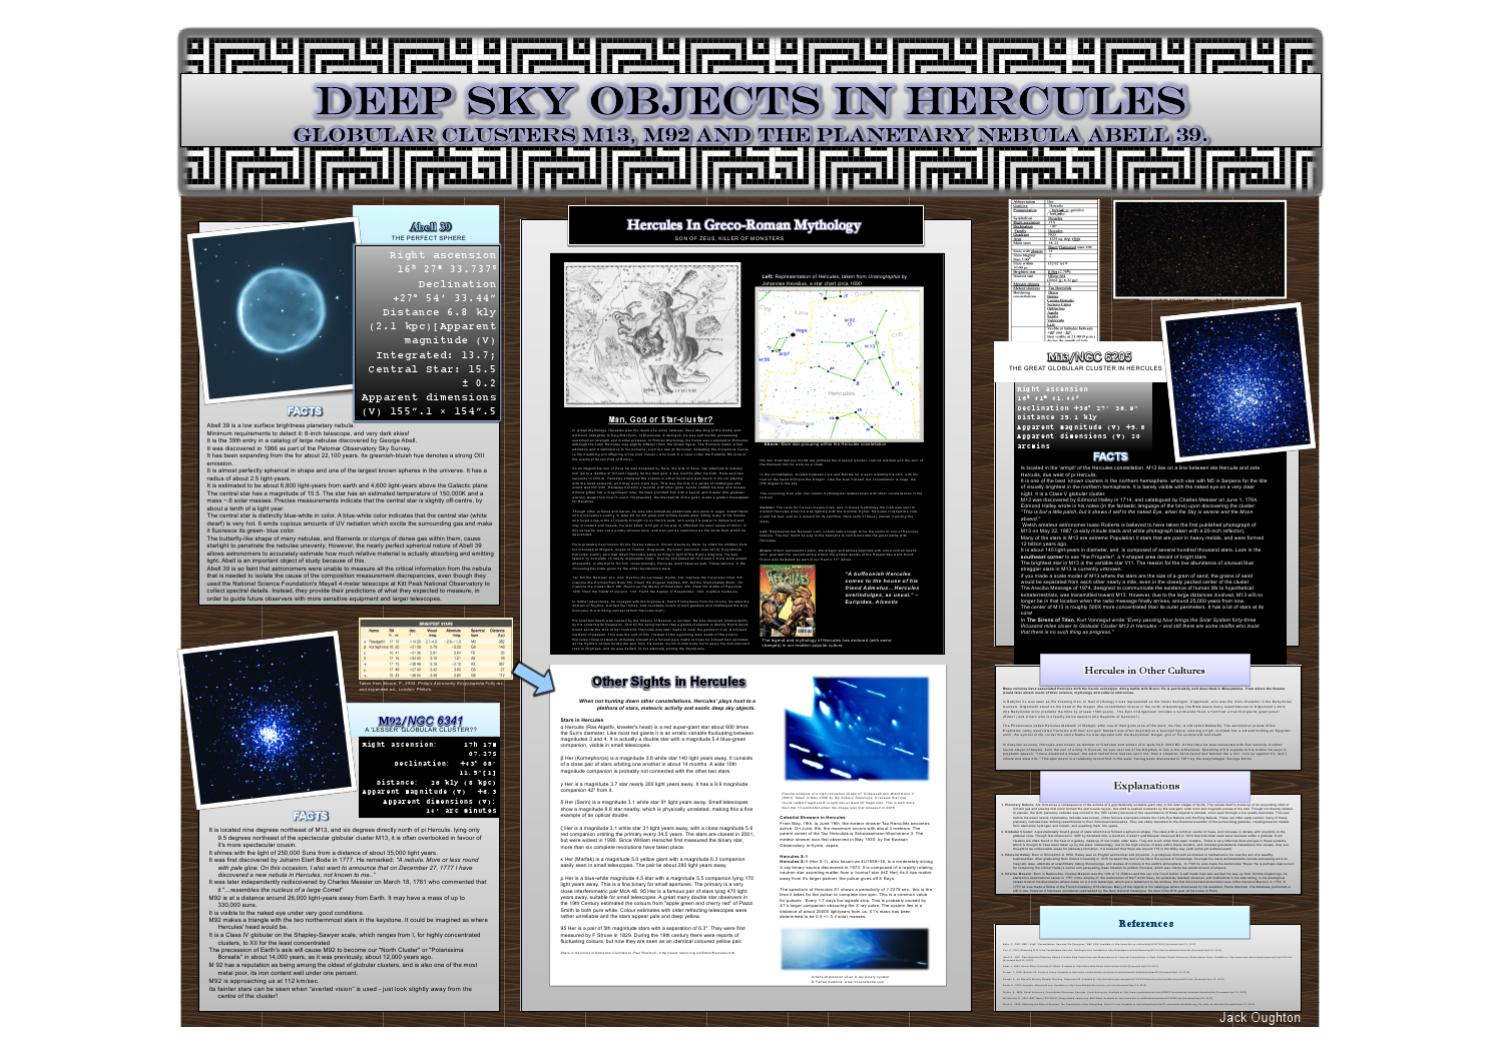 Jack Oughton - Hercules Scientific Poster by Jack Oughton